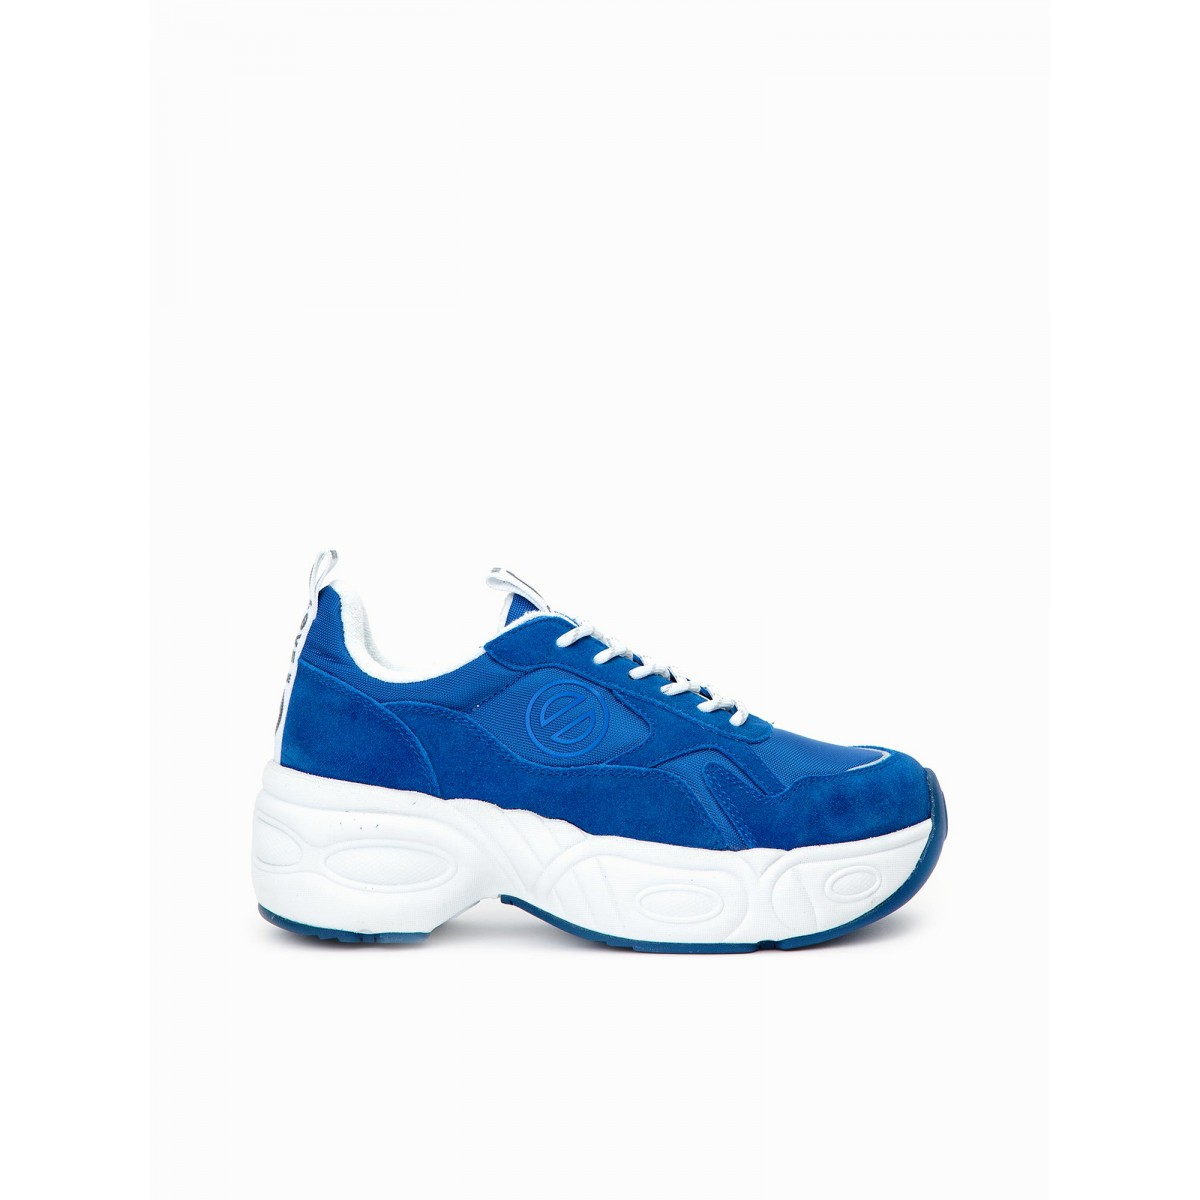 No Name NITRO JOGGER - NYLON/SUEDE - ELECTRIC BLUE/BLUE